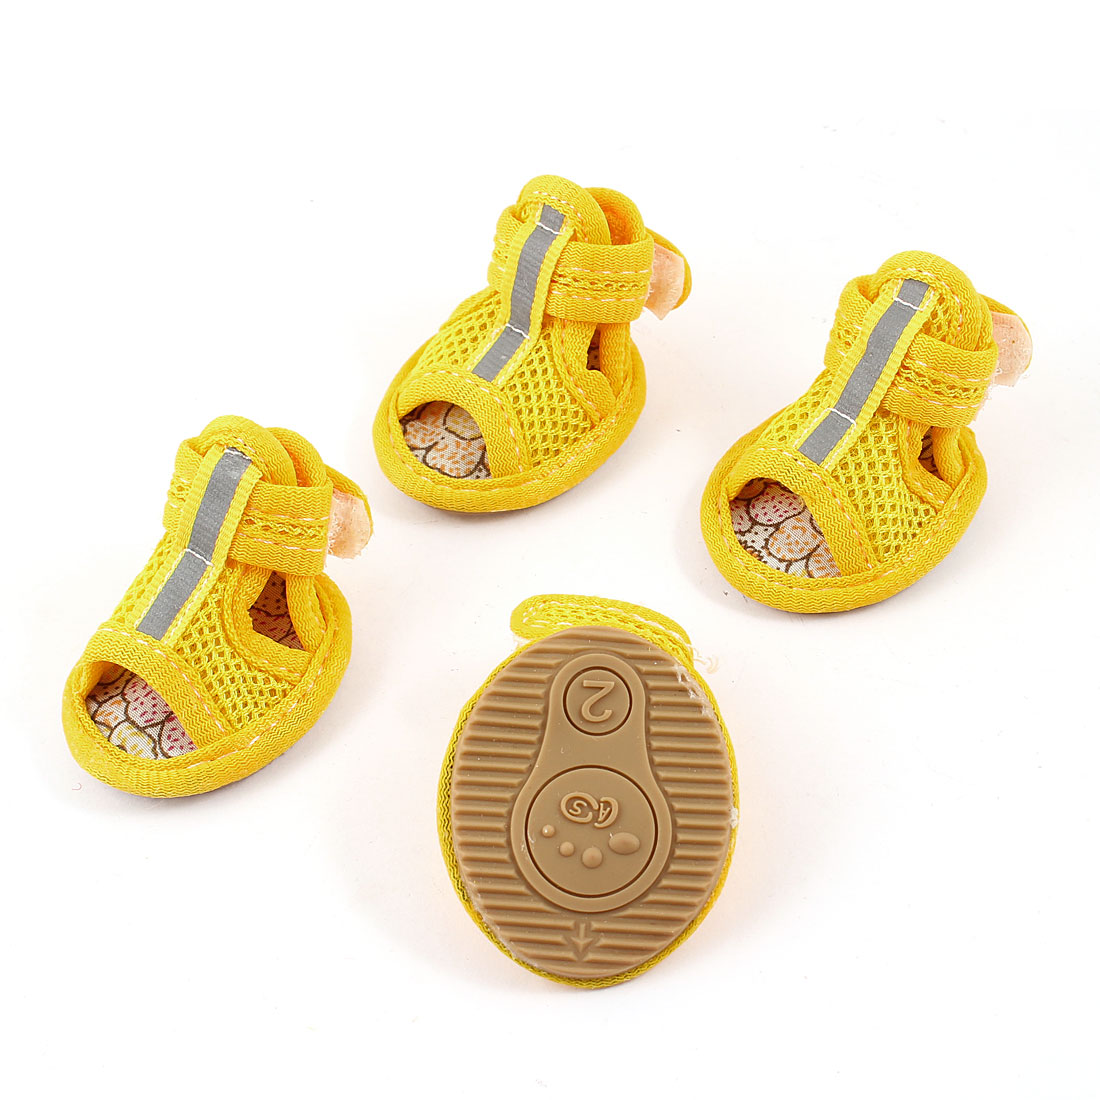 2 Pair Hook Loop Closure Pet Poodle Doggy Mesh Shoes Boots Booties Yellow Size XS